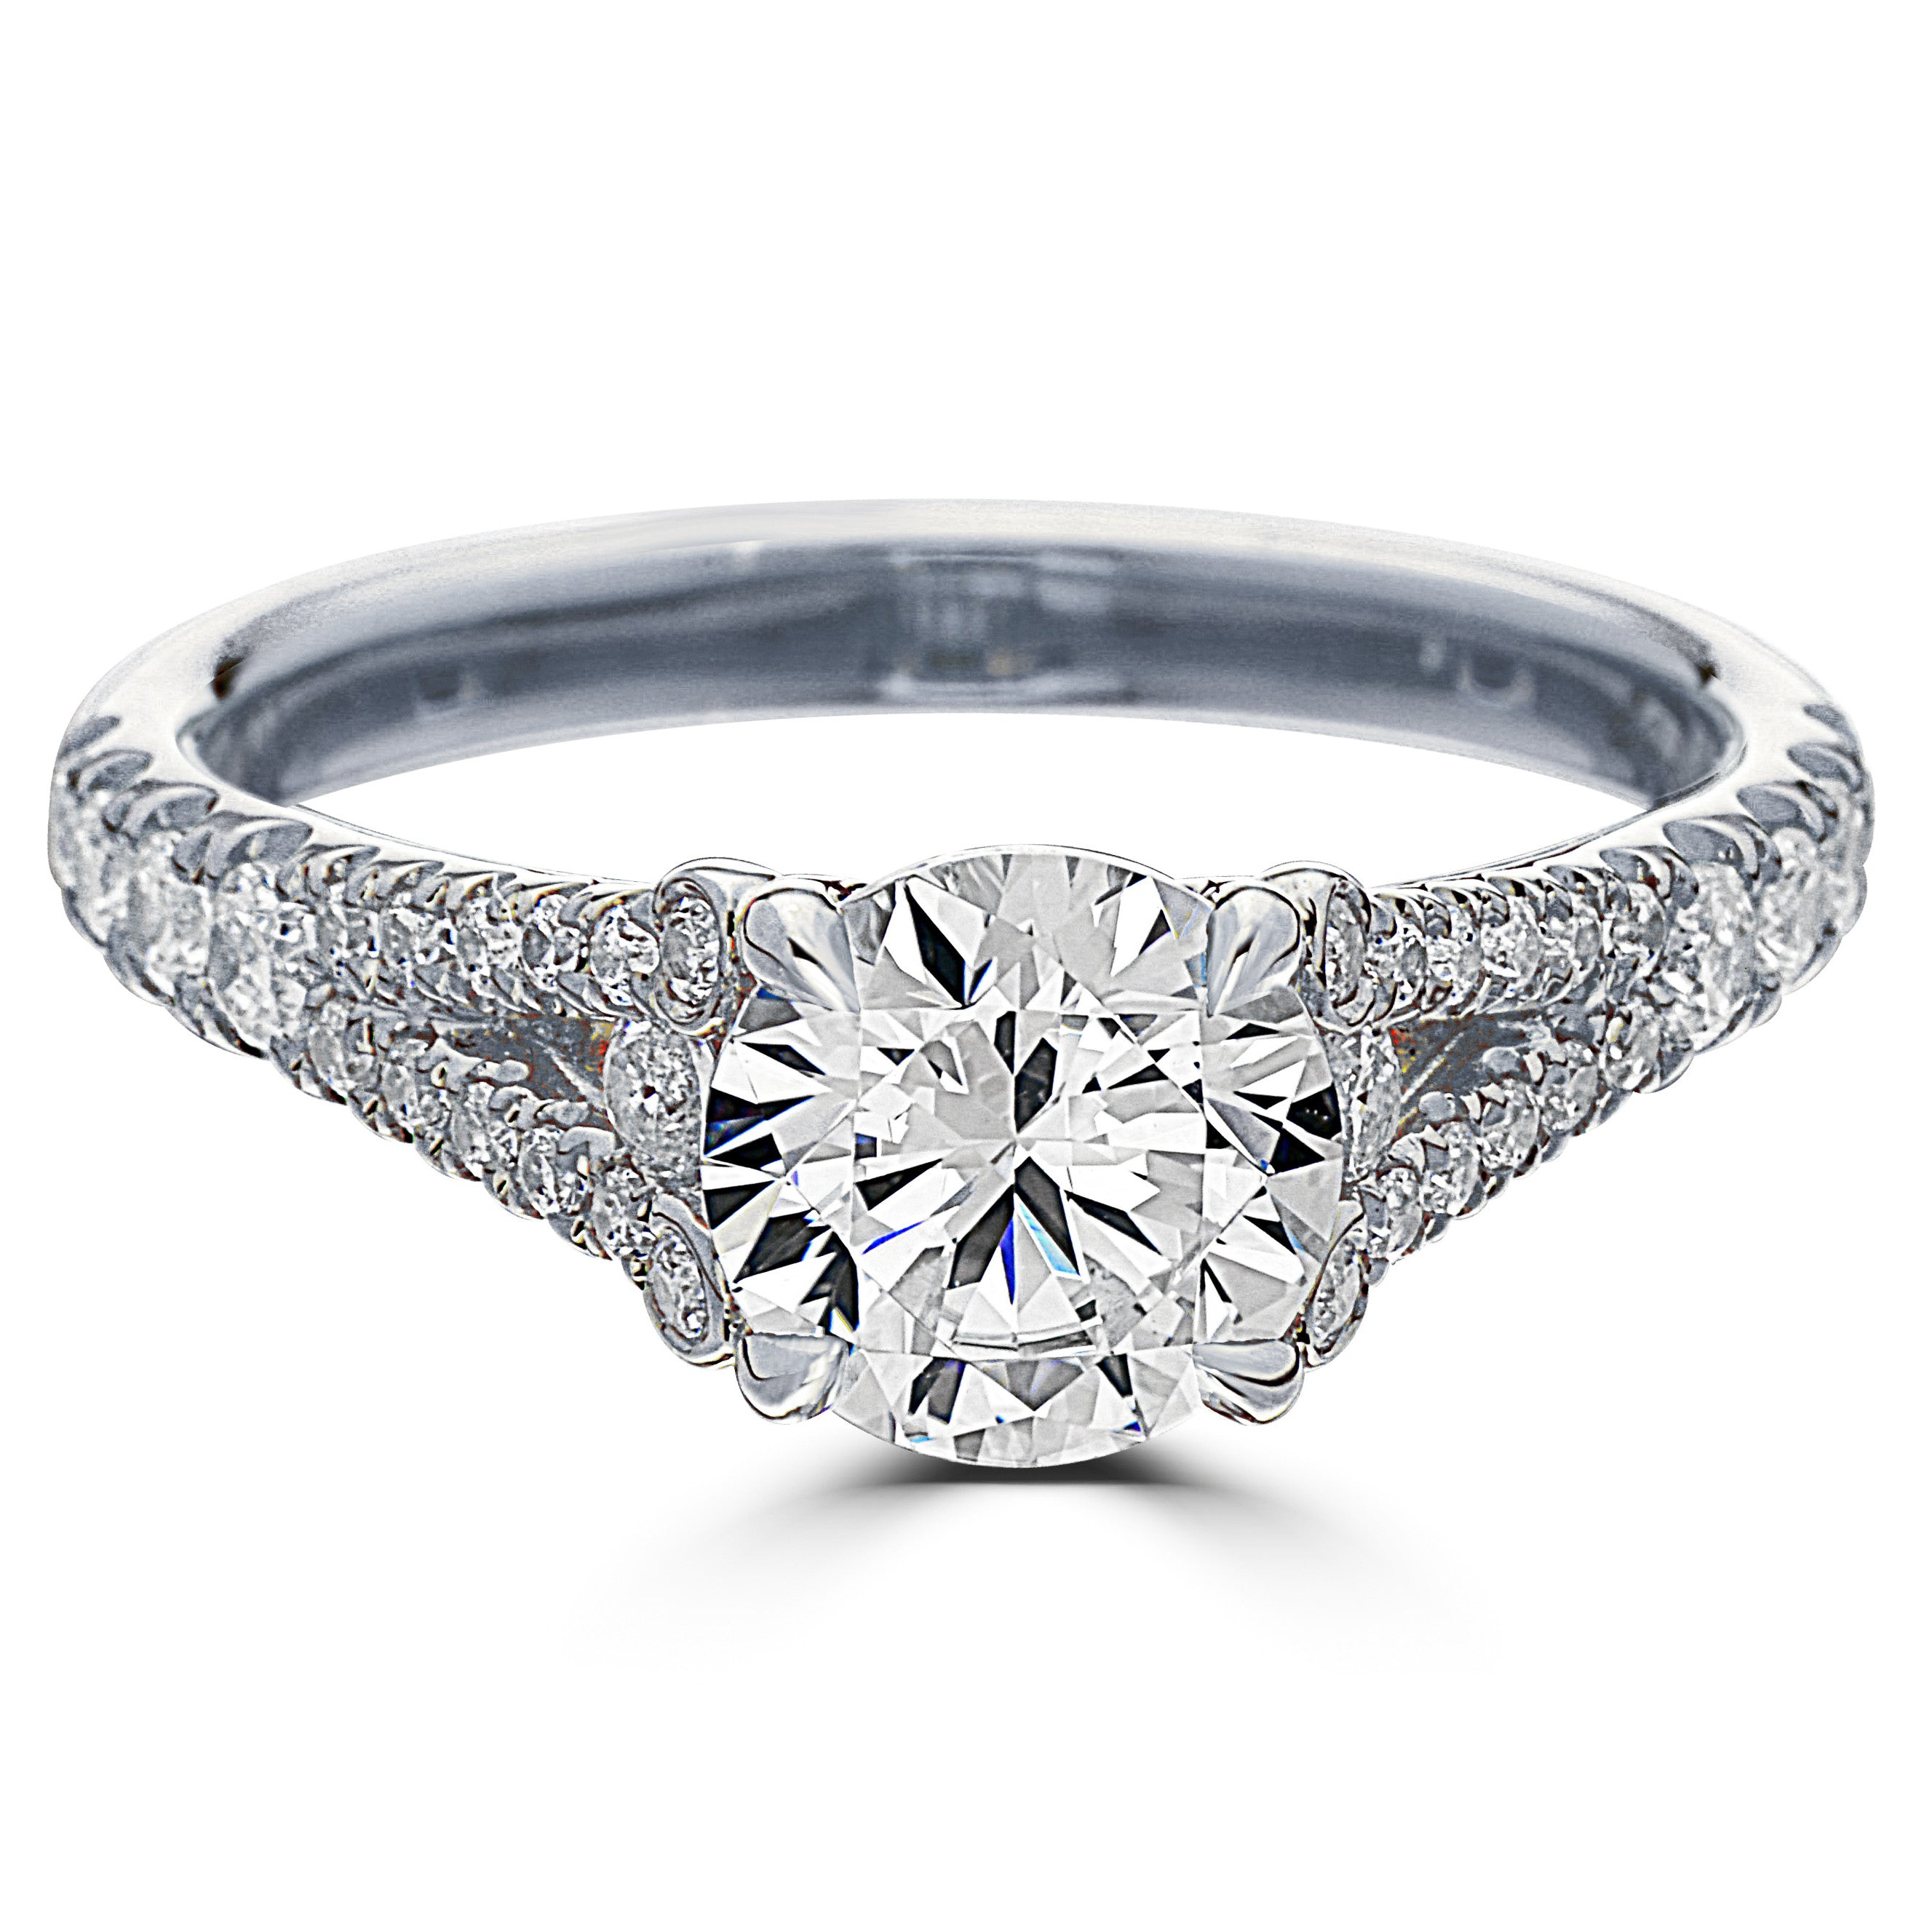 the surrounding stunning rings aspire and ring that consists smaller of in round this large centre view diamond engagement shoulders diamonds one has products placed halo